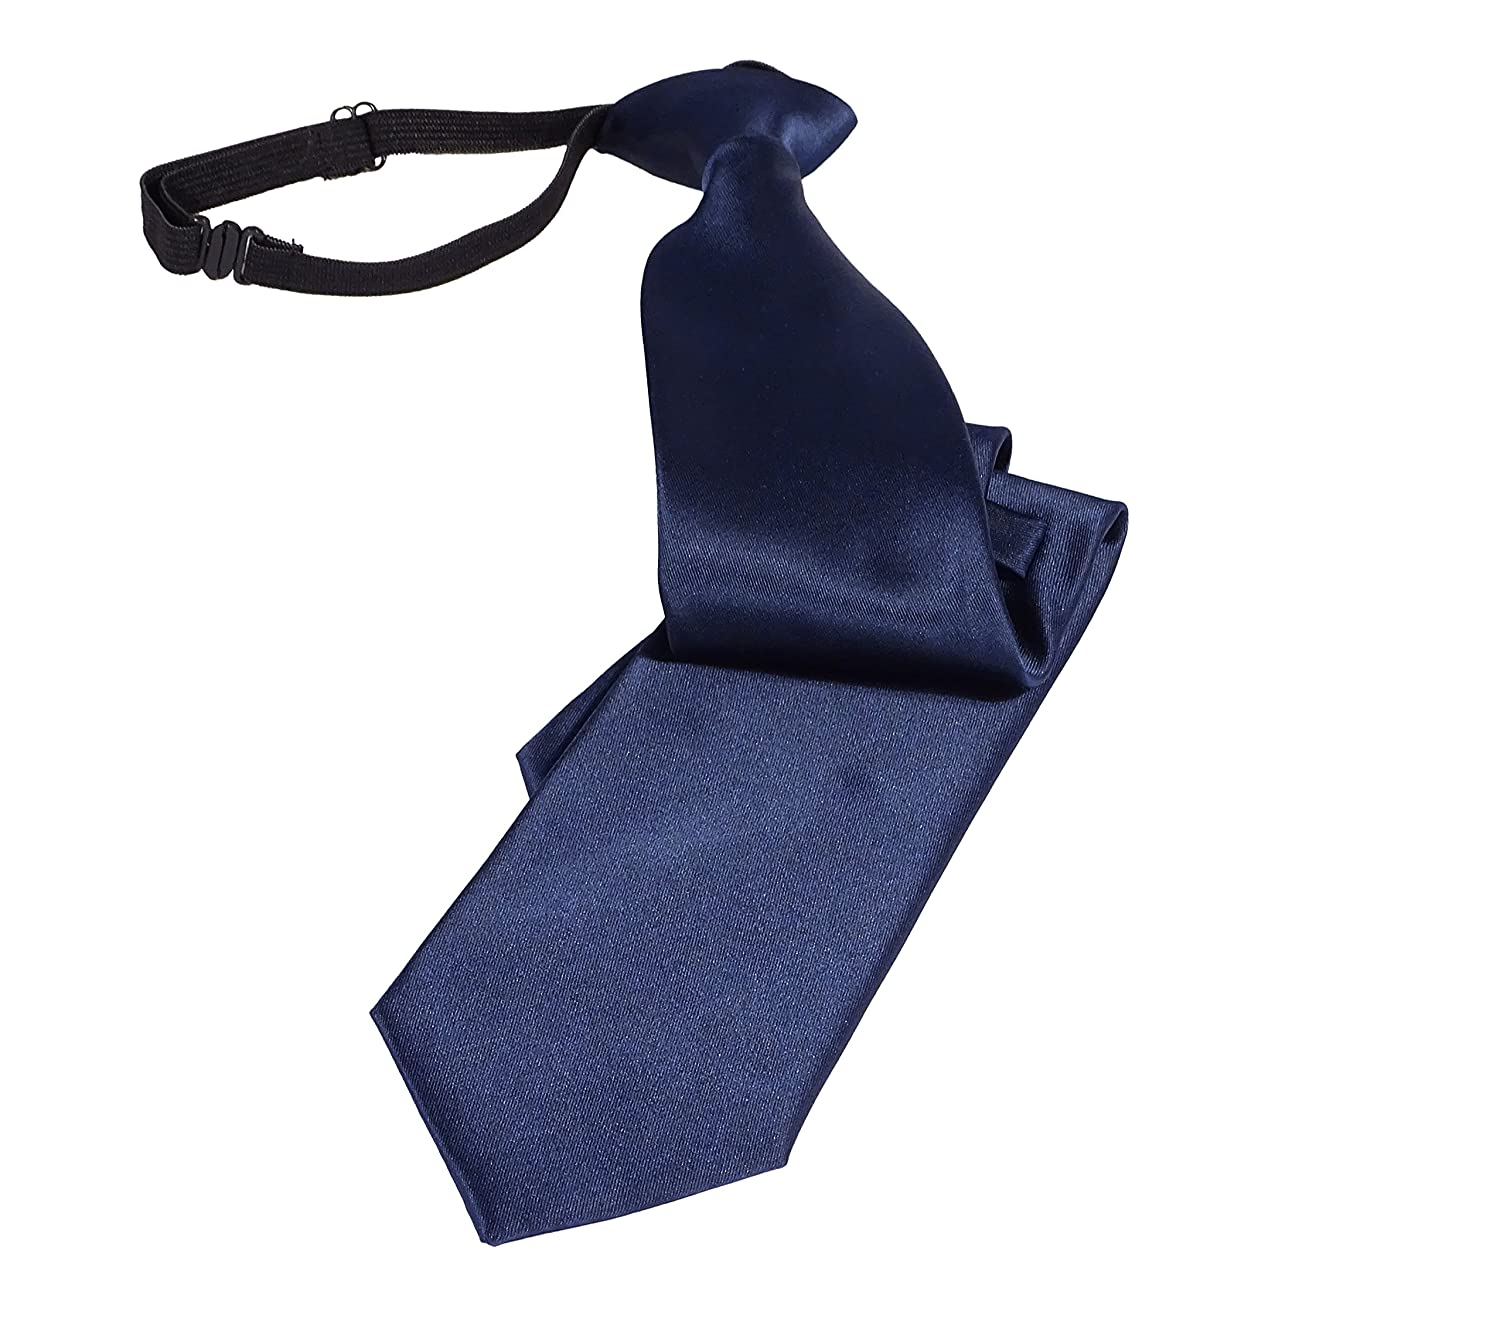 Pietro Baldini Pietro Baldini Adjustable Blue Tie with elastic Band Plain Elasticated Zipper Tie Pre-tied necktie